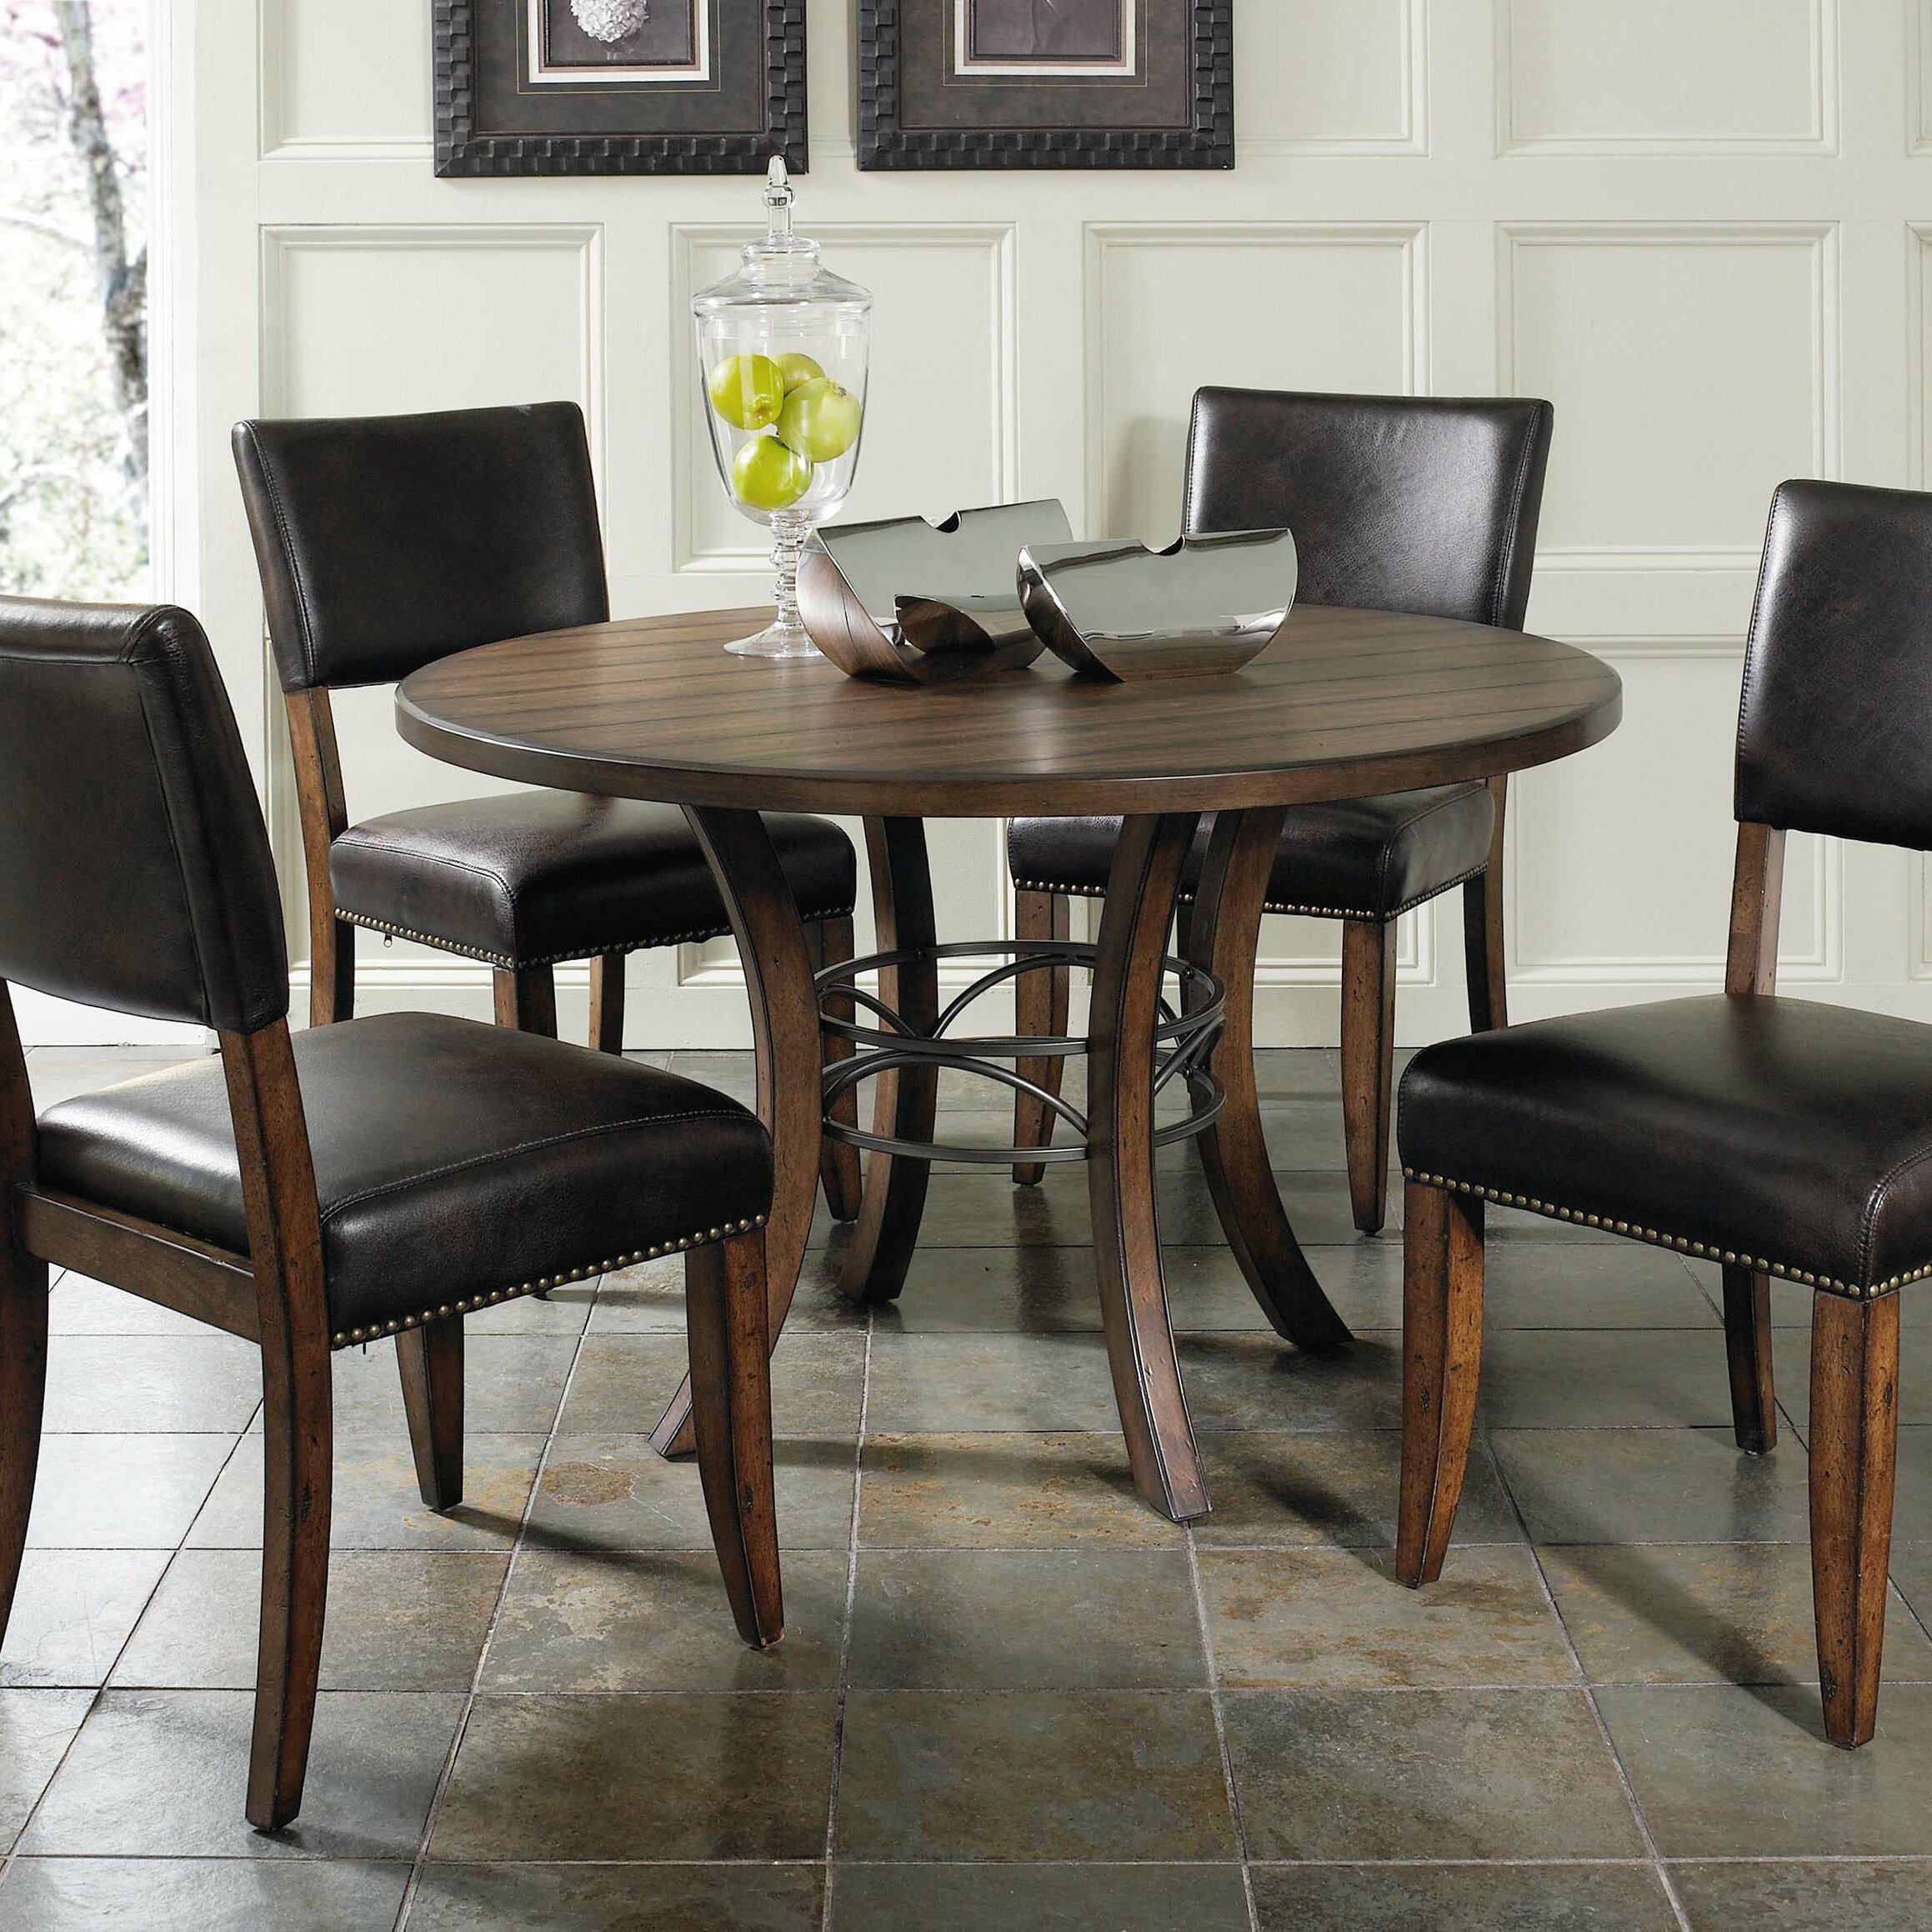 Red Dining Table Set: Red Barrel Studio Royalton Round Dining Table & Reviews